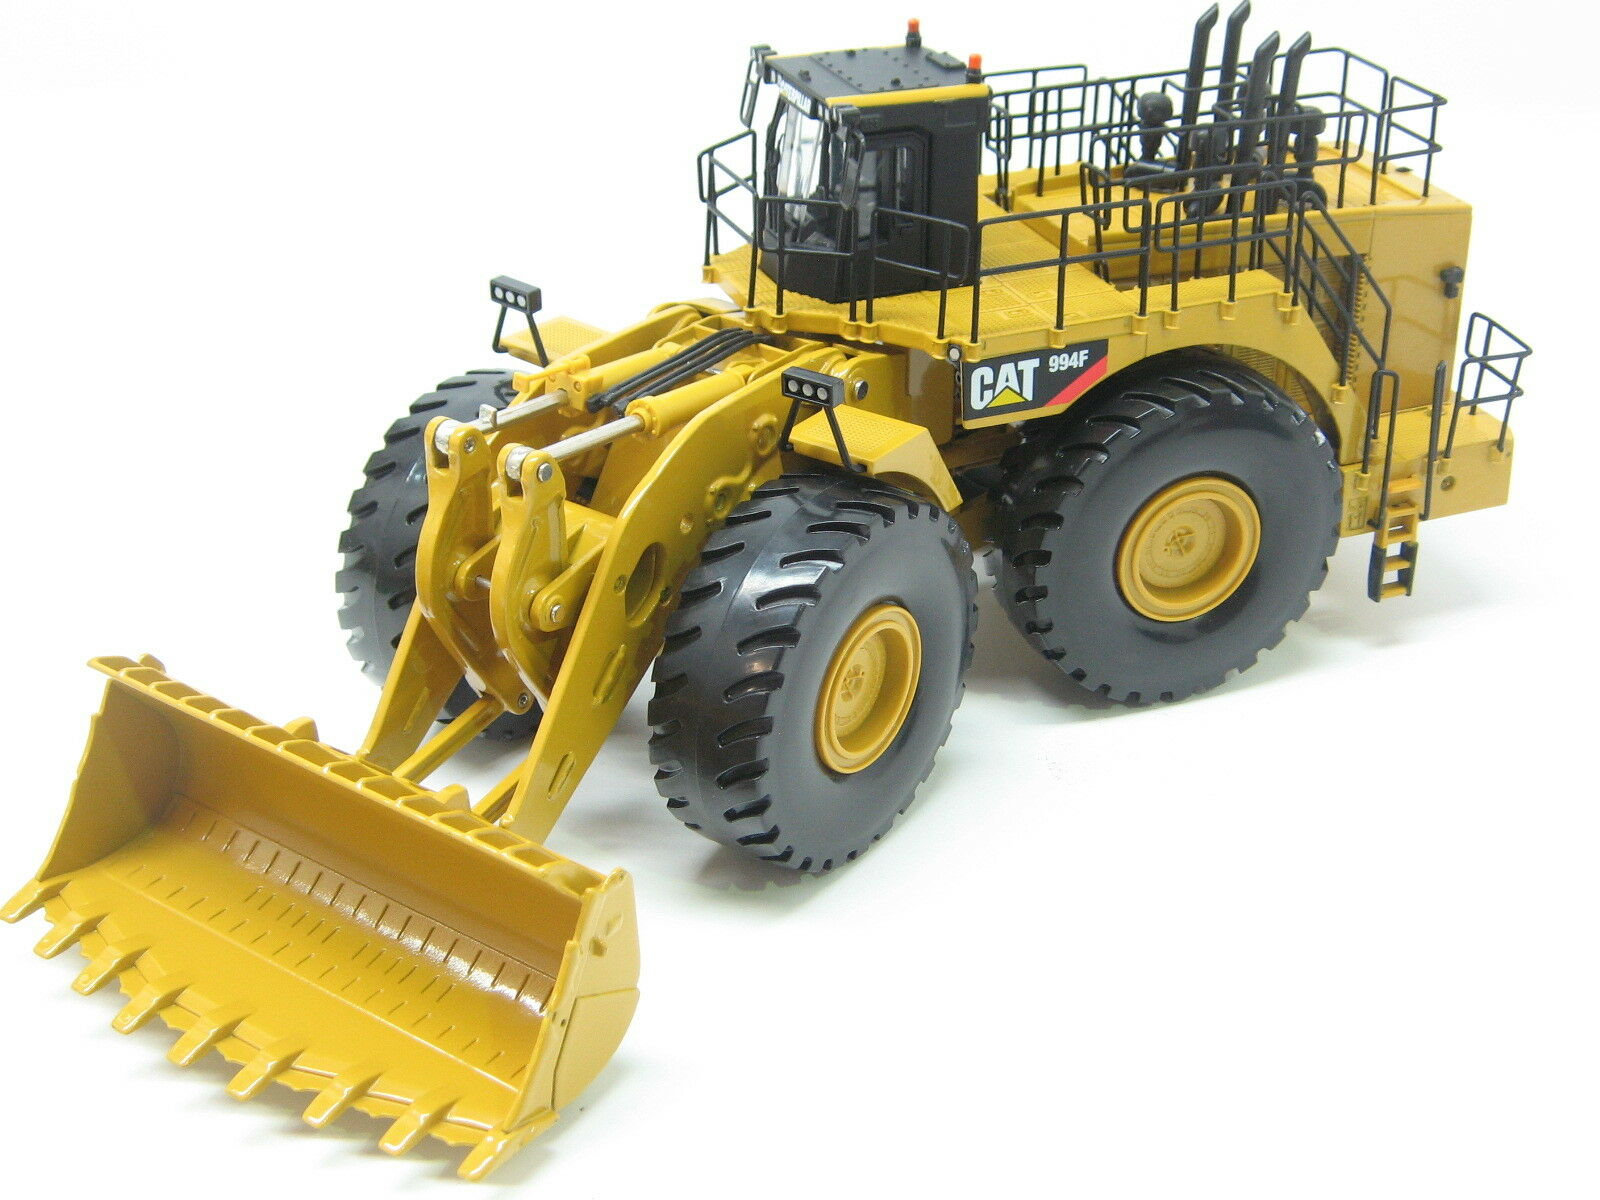 CATERPILLAR 994F WHEEL LOADER 1 50 Scale by Norscot